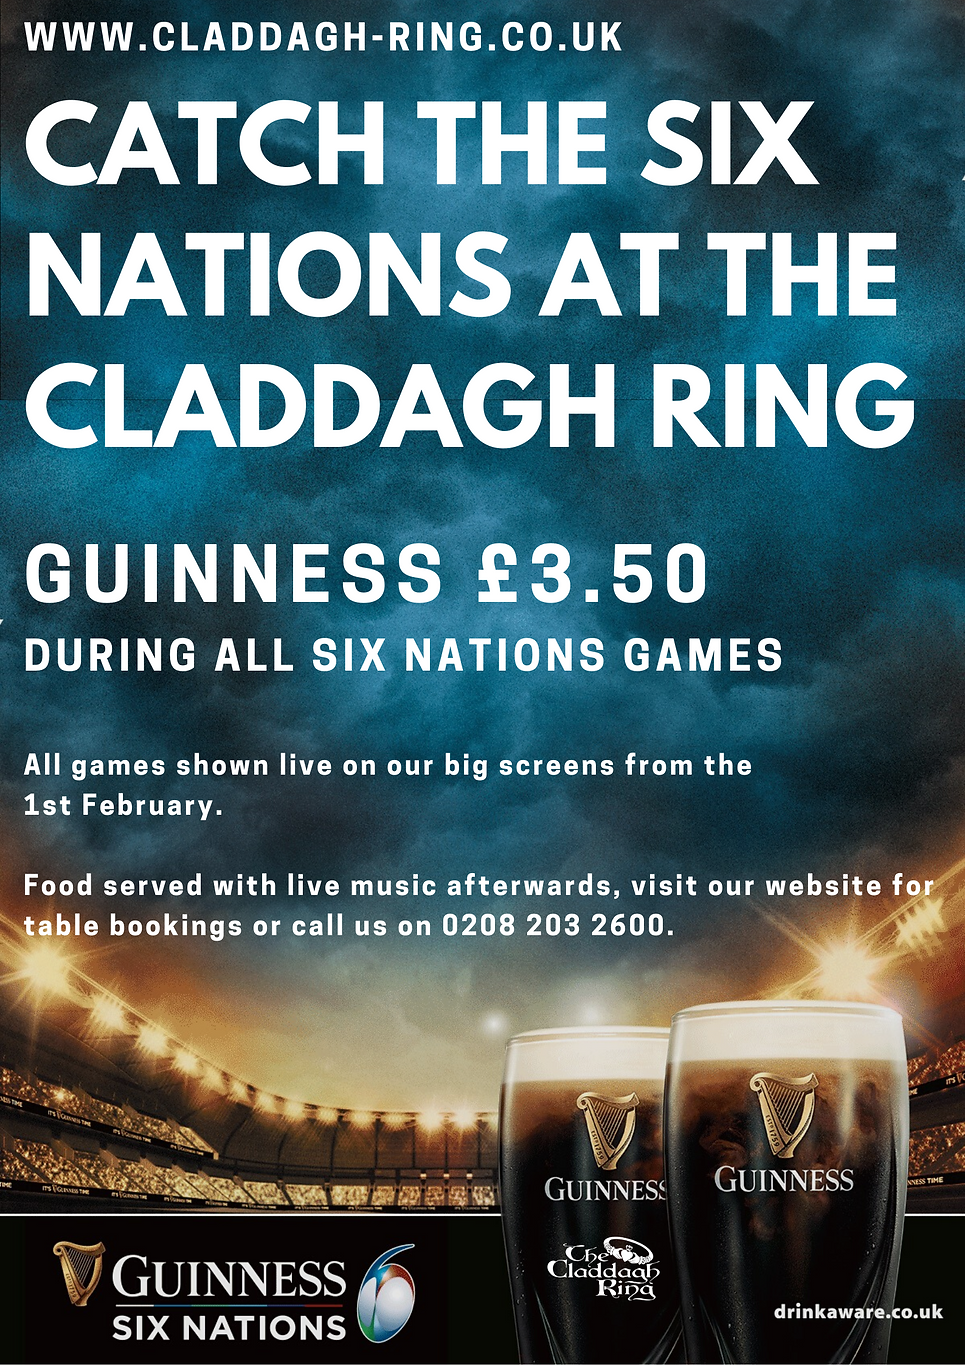 CATCH THE SIX NATIONS AT THE CLADDAGH RI